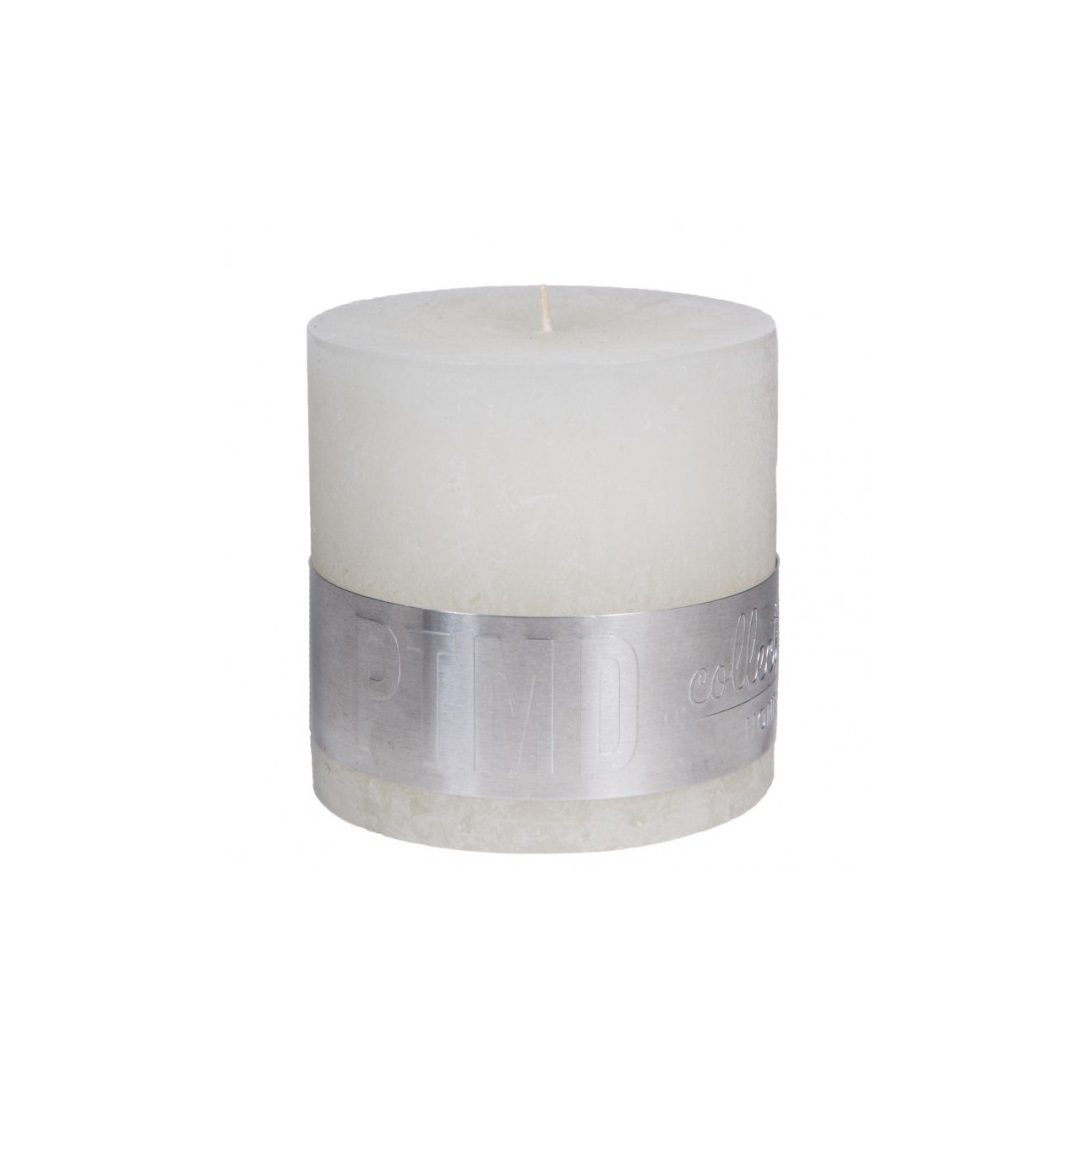 Rustic Hot White Block Candle 10 X 10 Cm Ptmd Collection 205 1